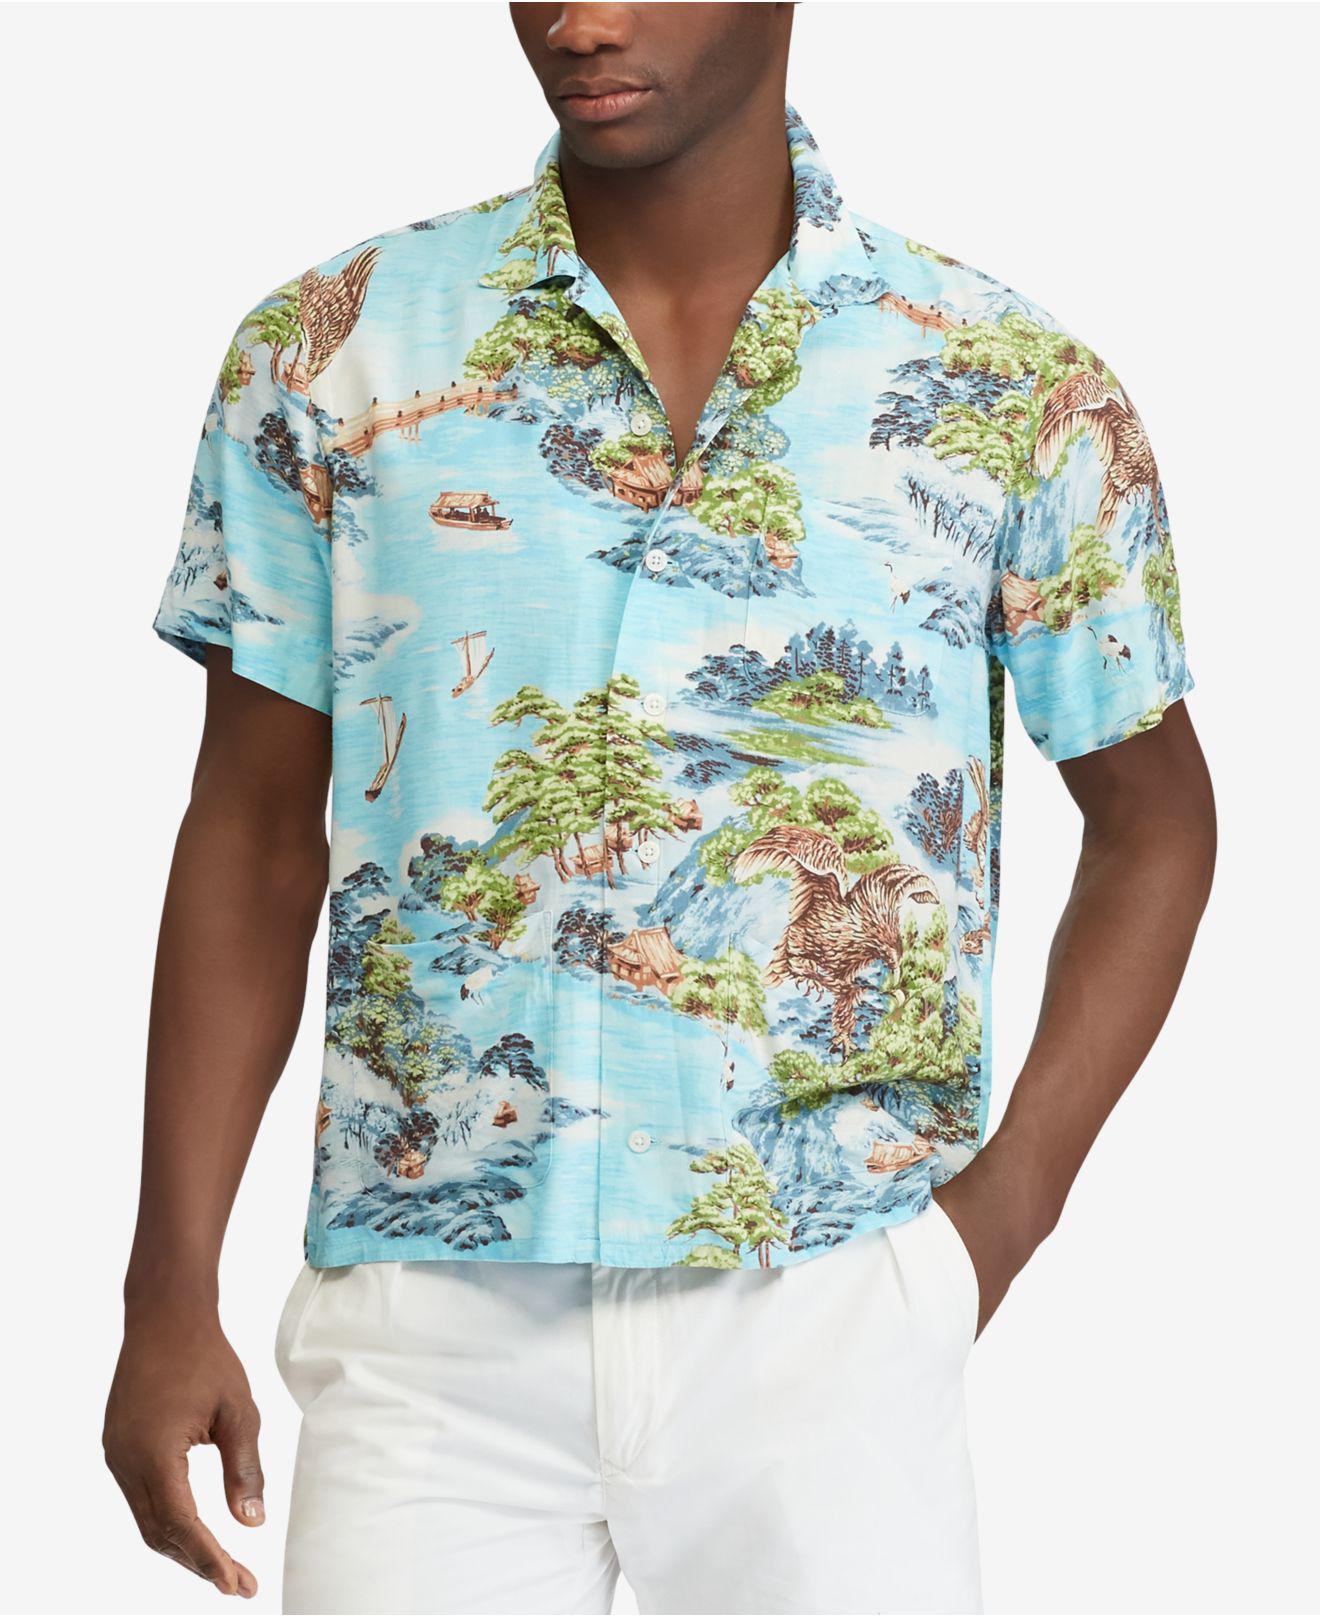 ad1eb39166013 Lyst - Polo Ralph Lauren Classic Fit Printed Shirt in Blue for Men